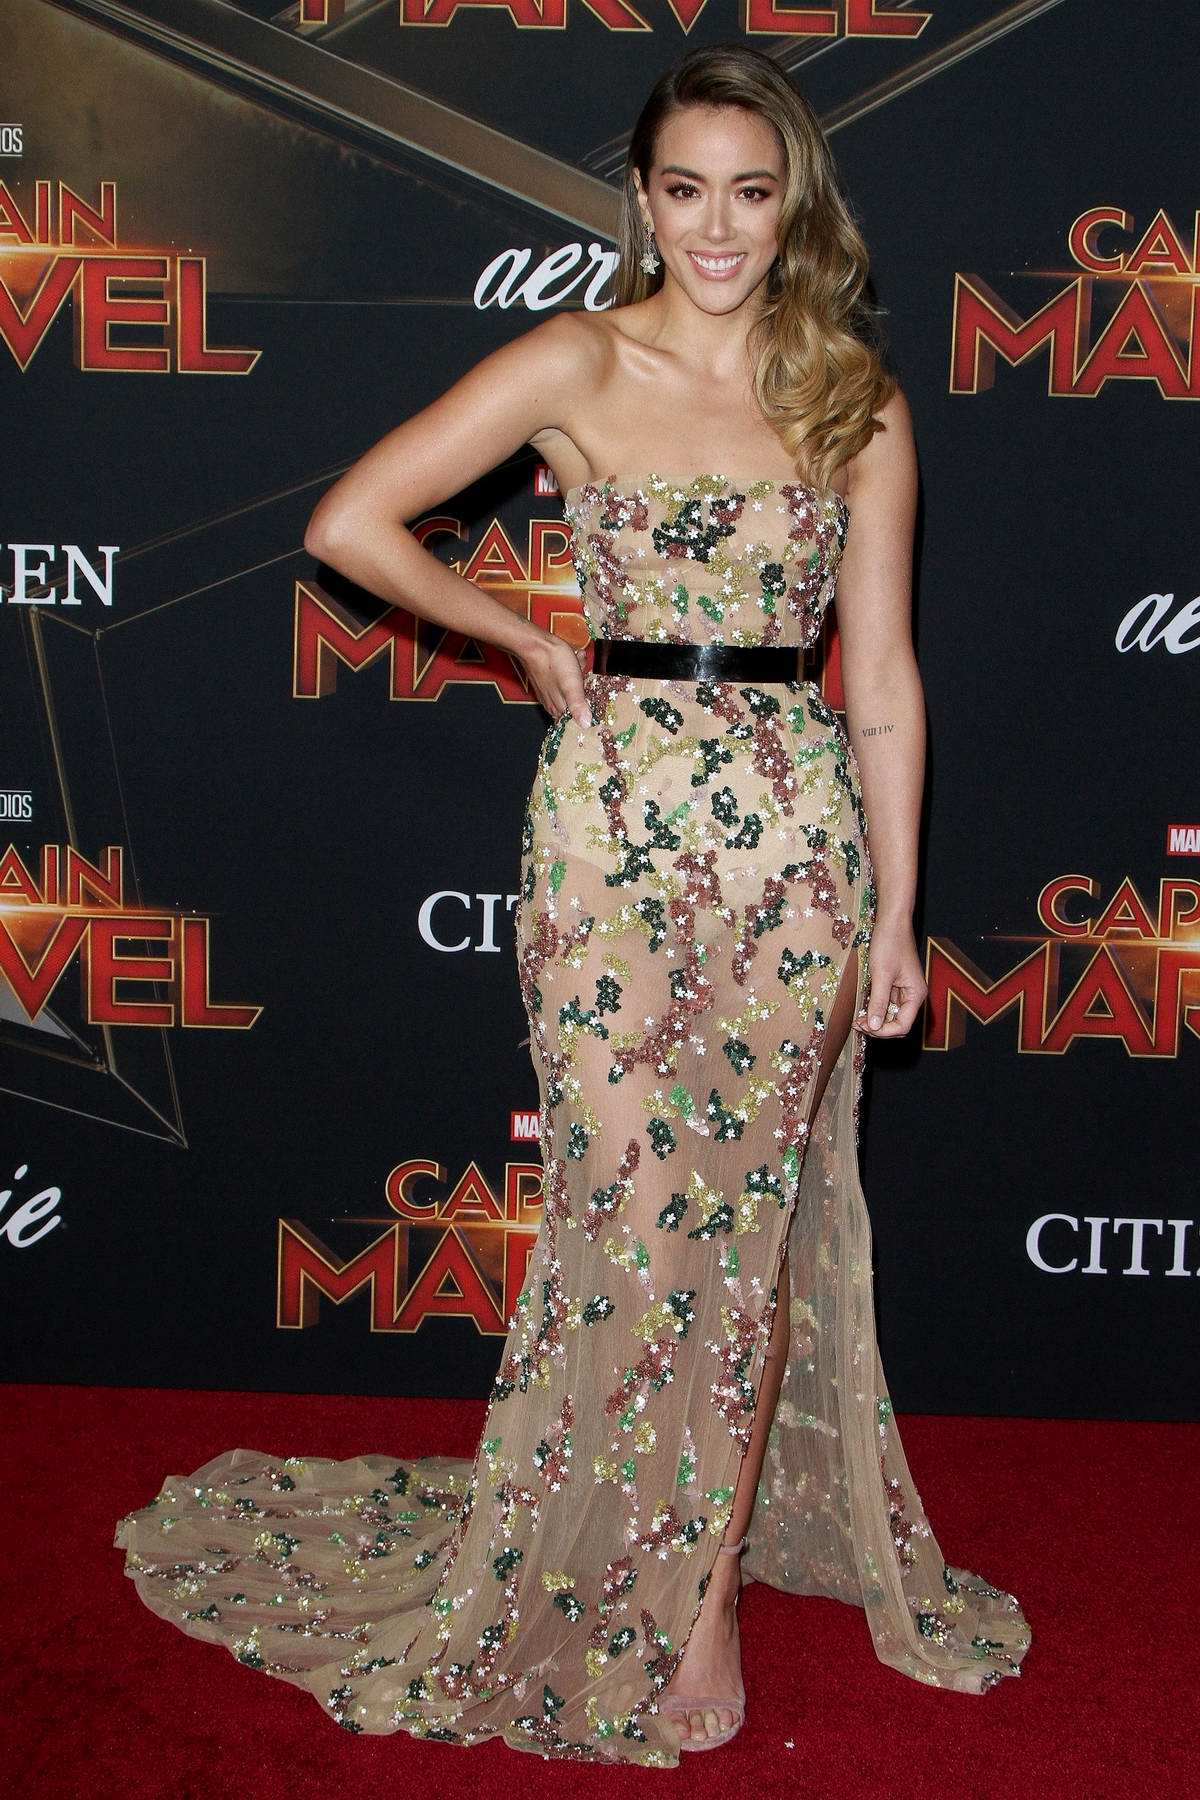 Chloe Bennet attends the World Premiere of 'Captain Marvel' at the El Capitan Theatre in Hollywood, California